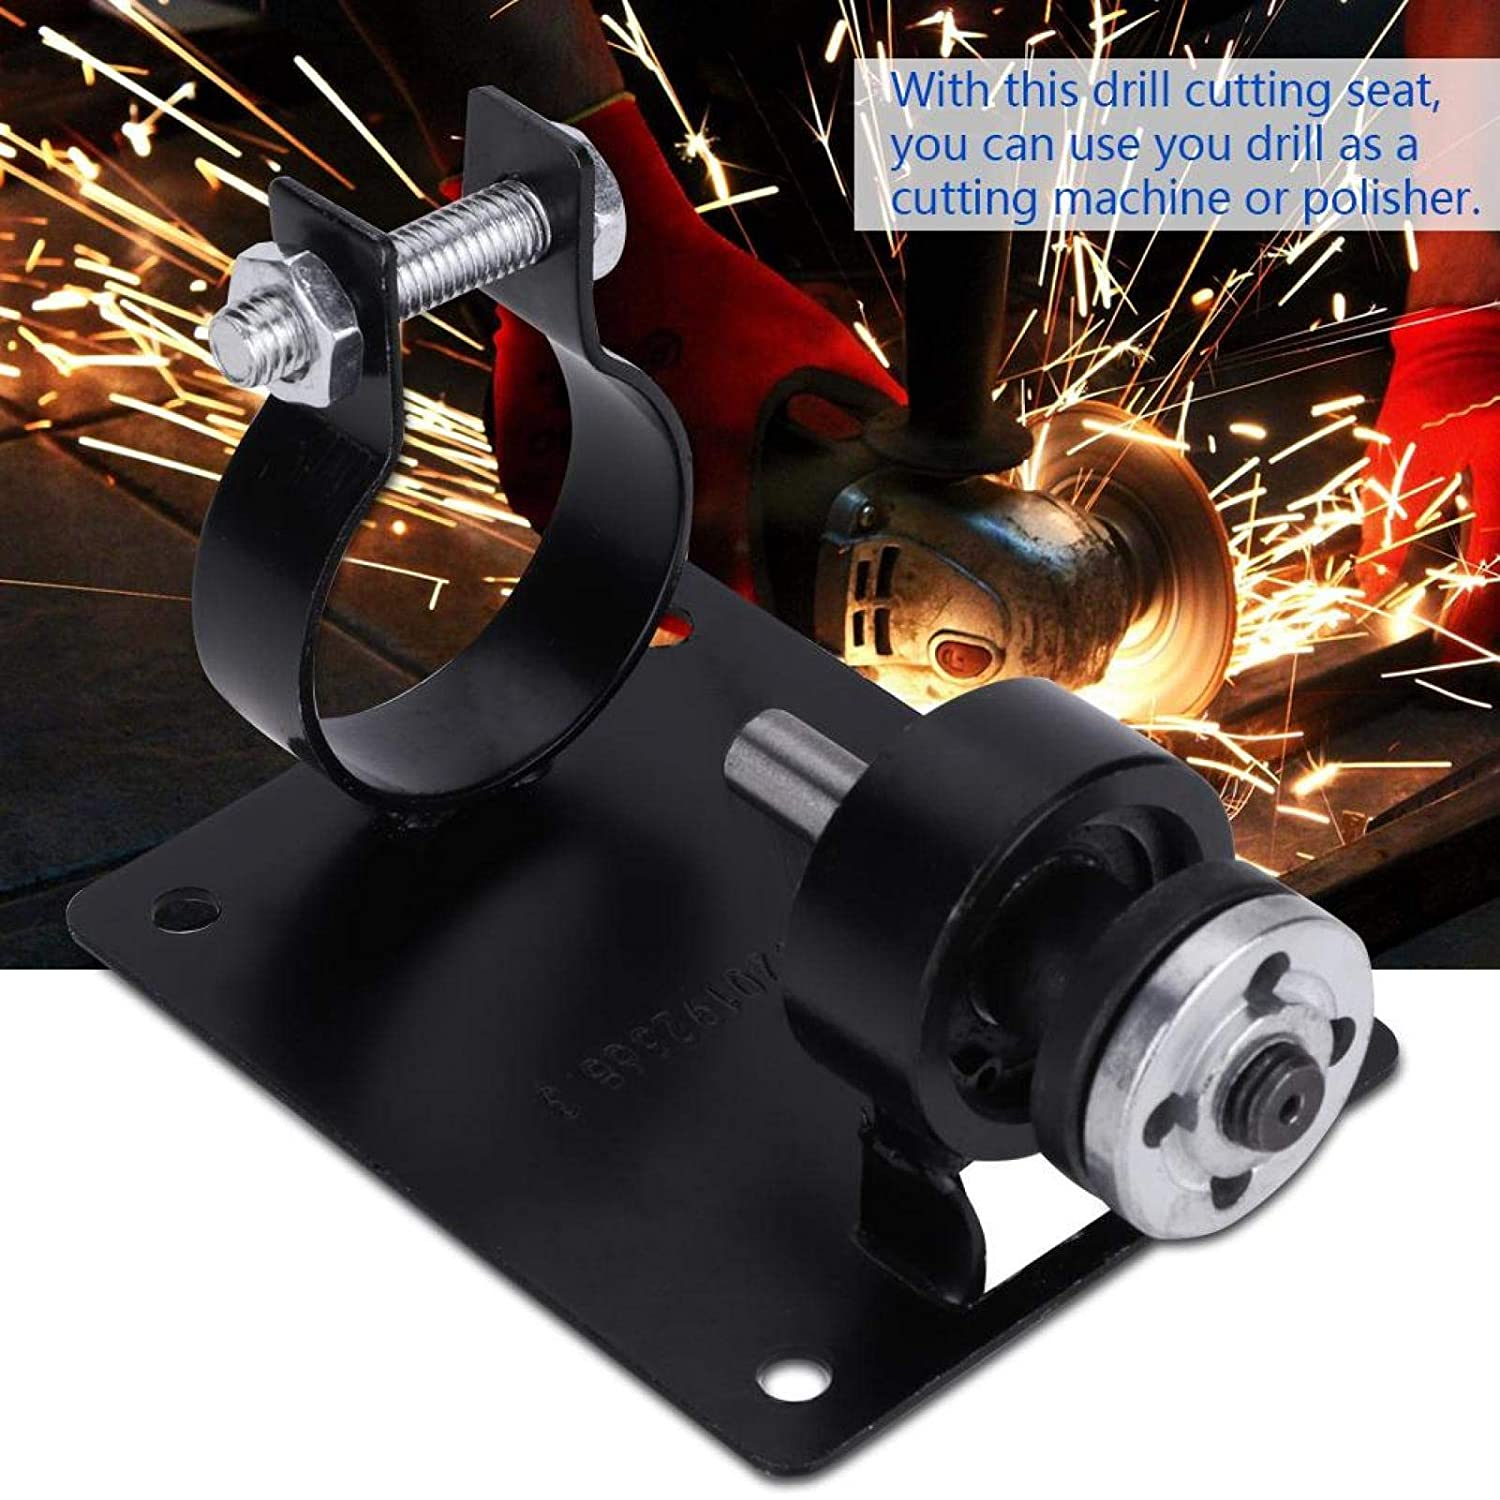 low-pricing Drill Cutting Bracket Professiona Seat New product!! Practical